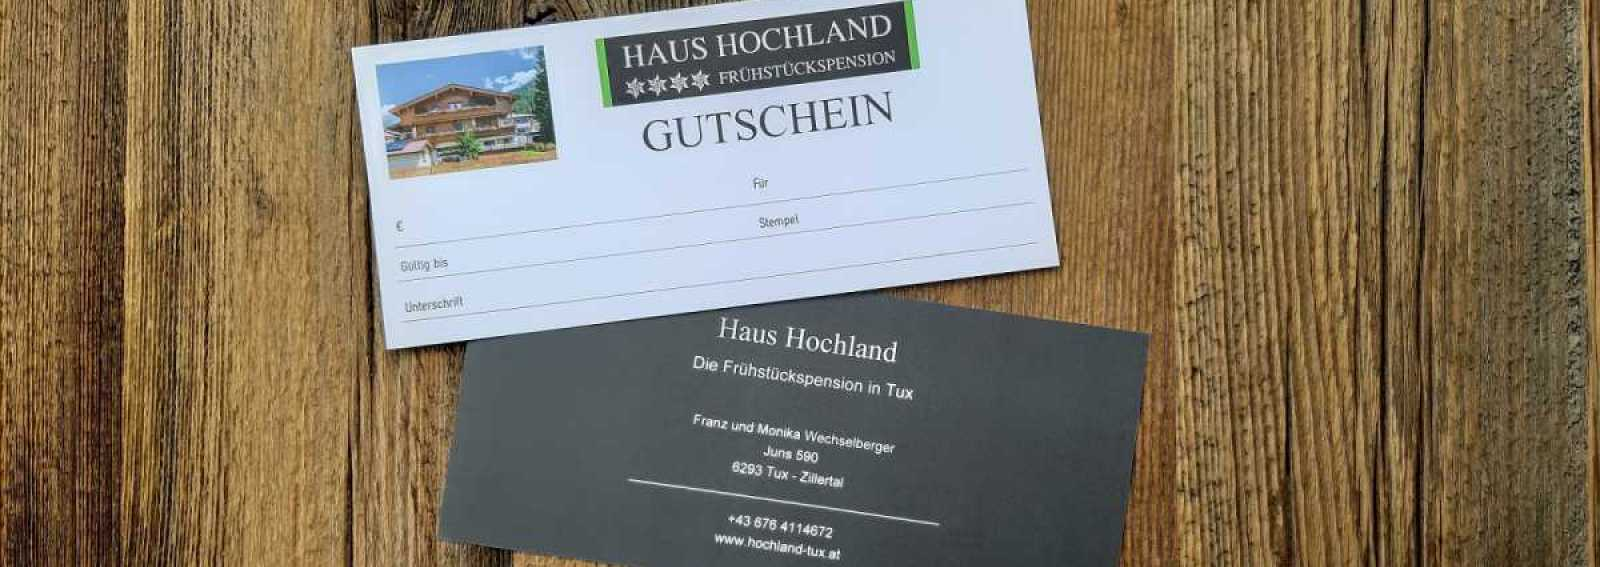 Hochland Coupon - The best Gift ever